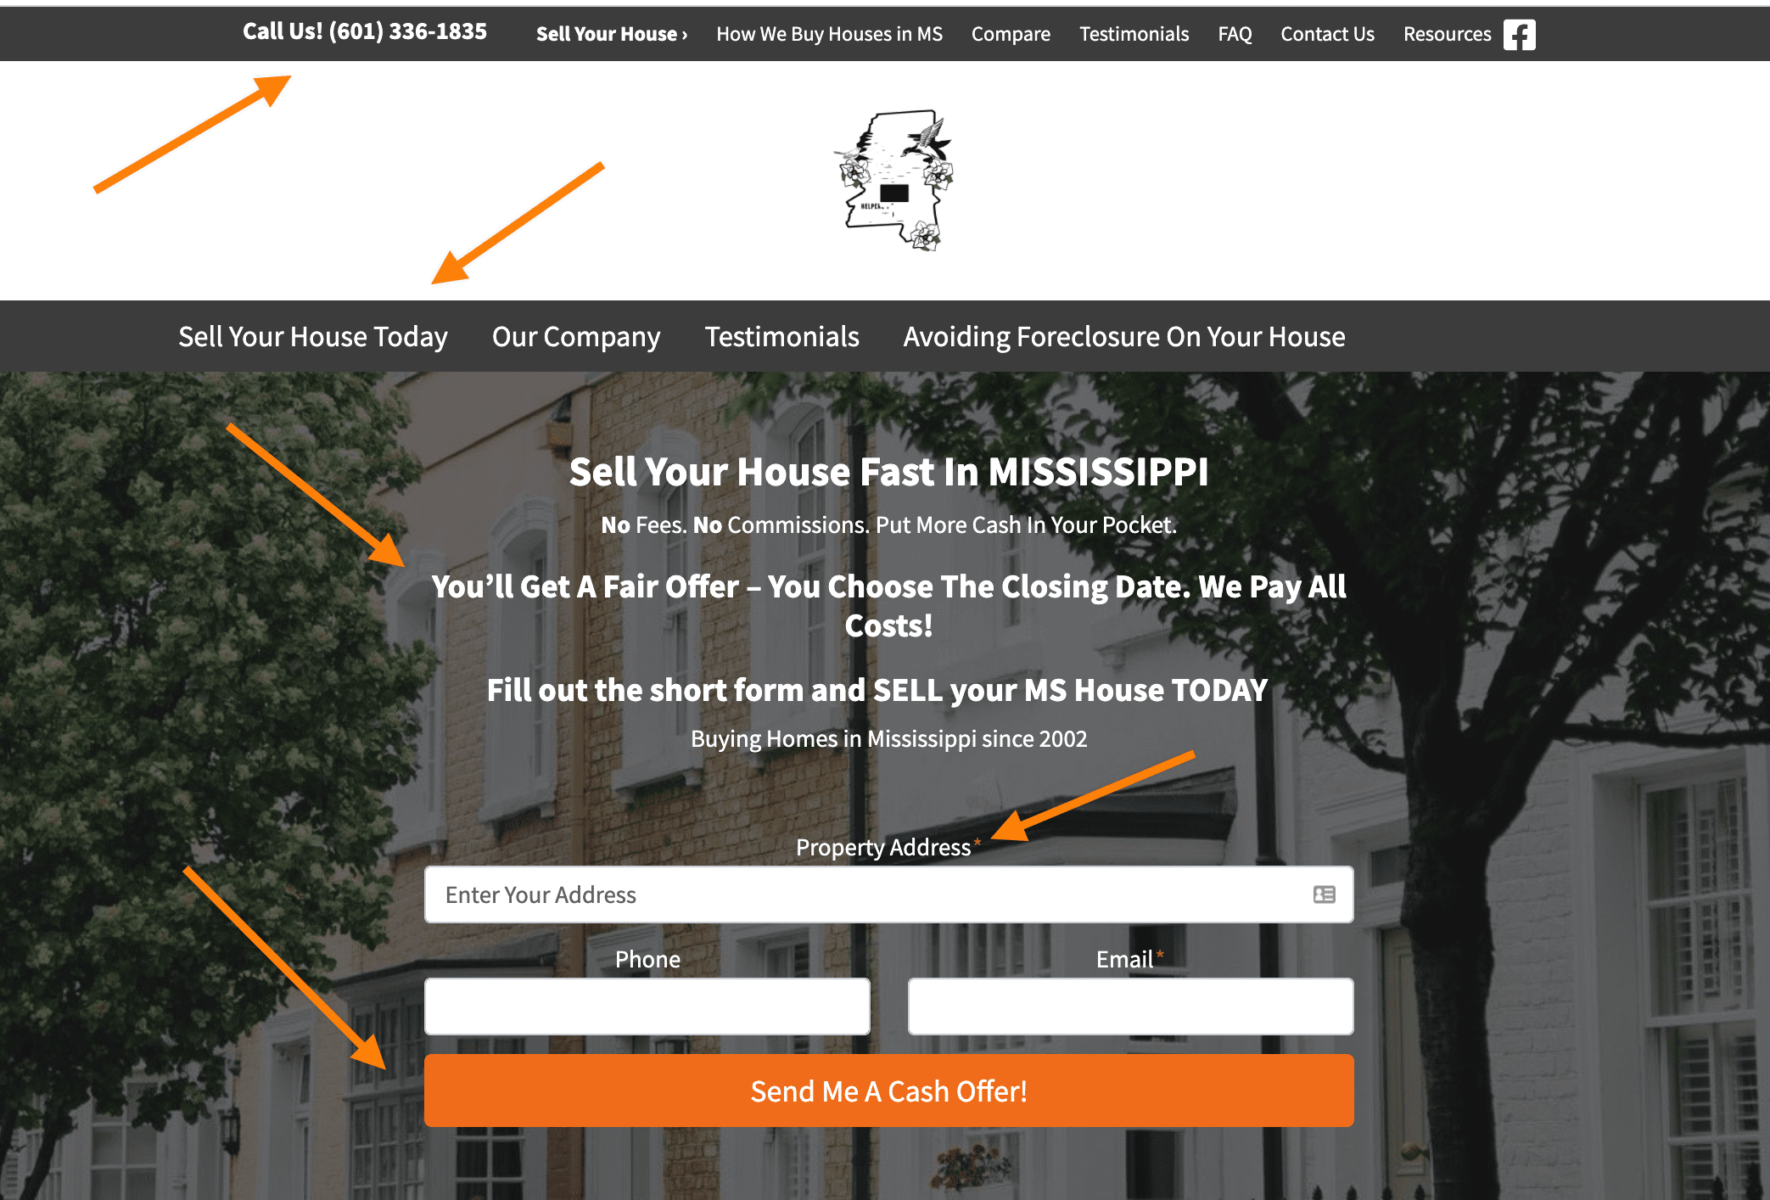 Carrot real estate investor website hero section